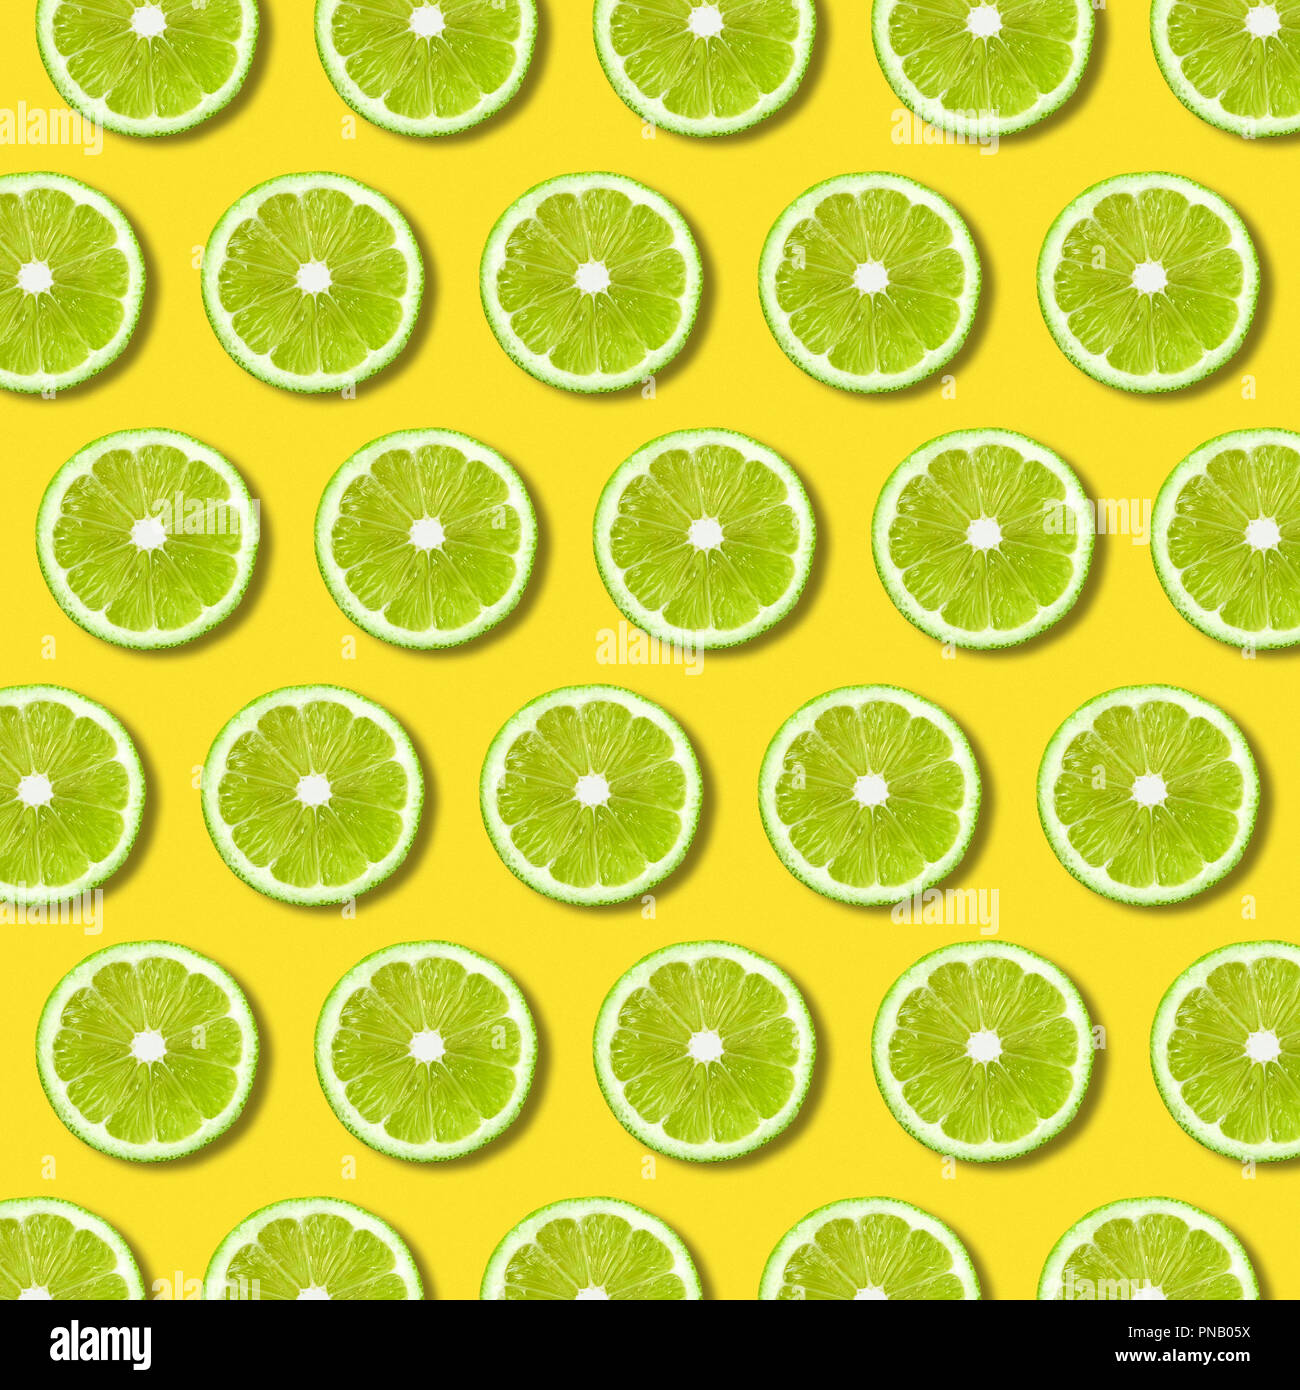 Green lime slices pattern on vibrant yellow color background. Minimal flat lay food texture - Stock Image